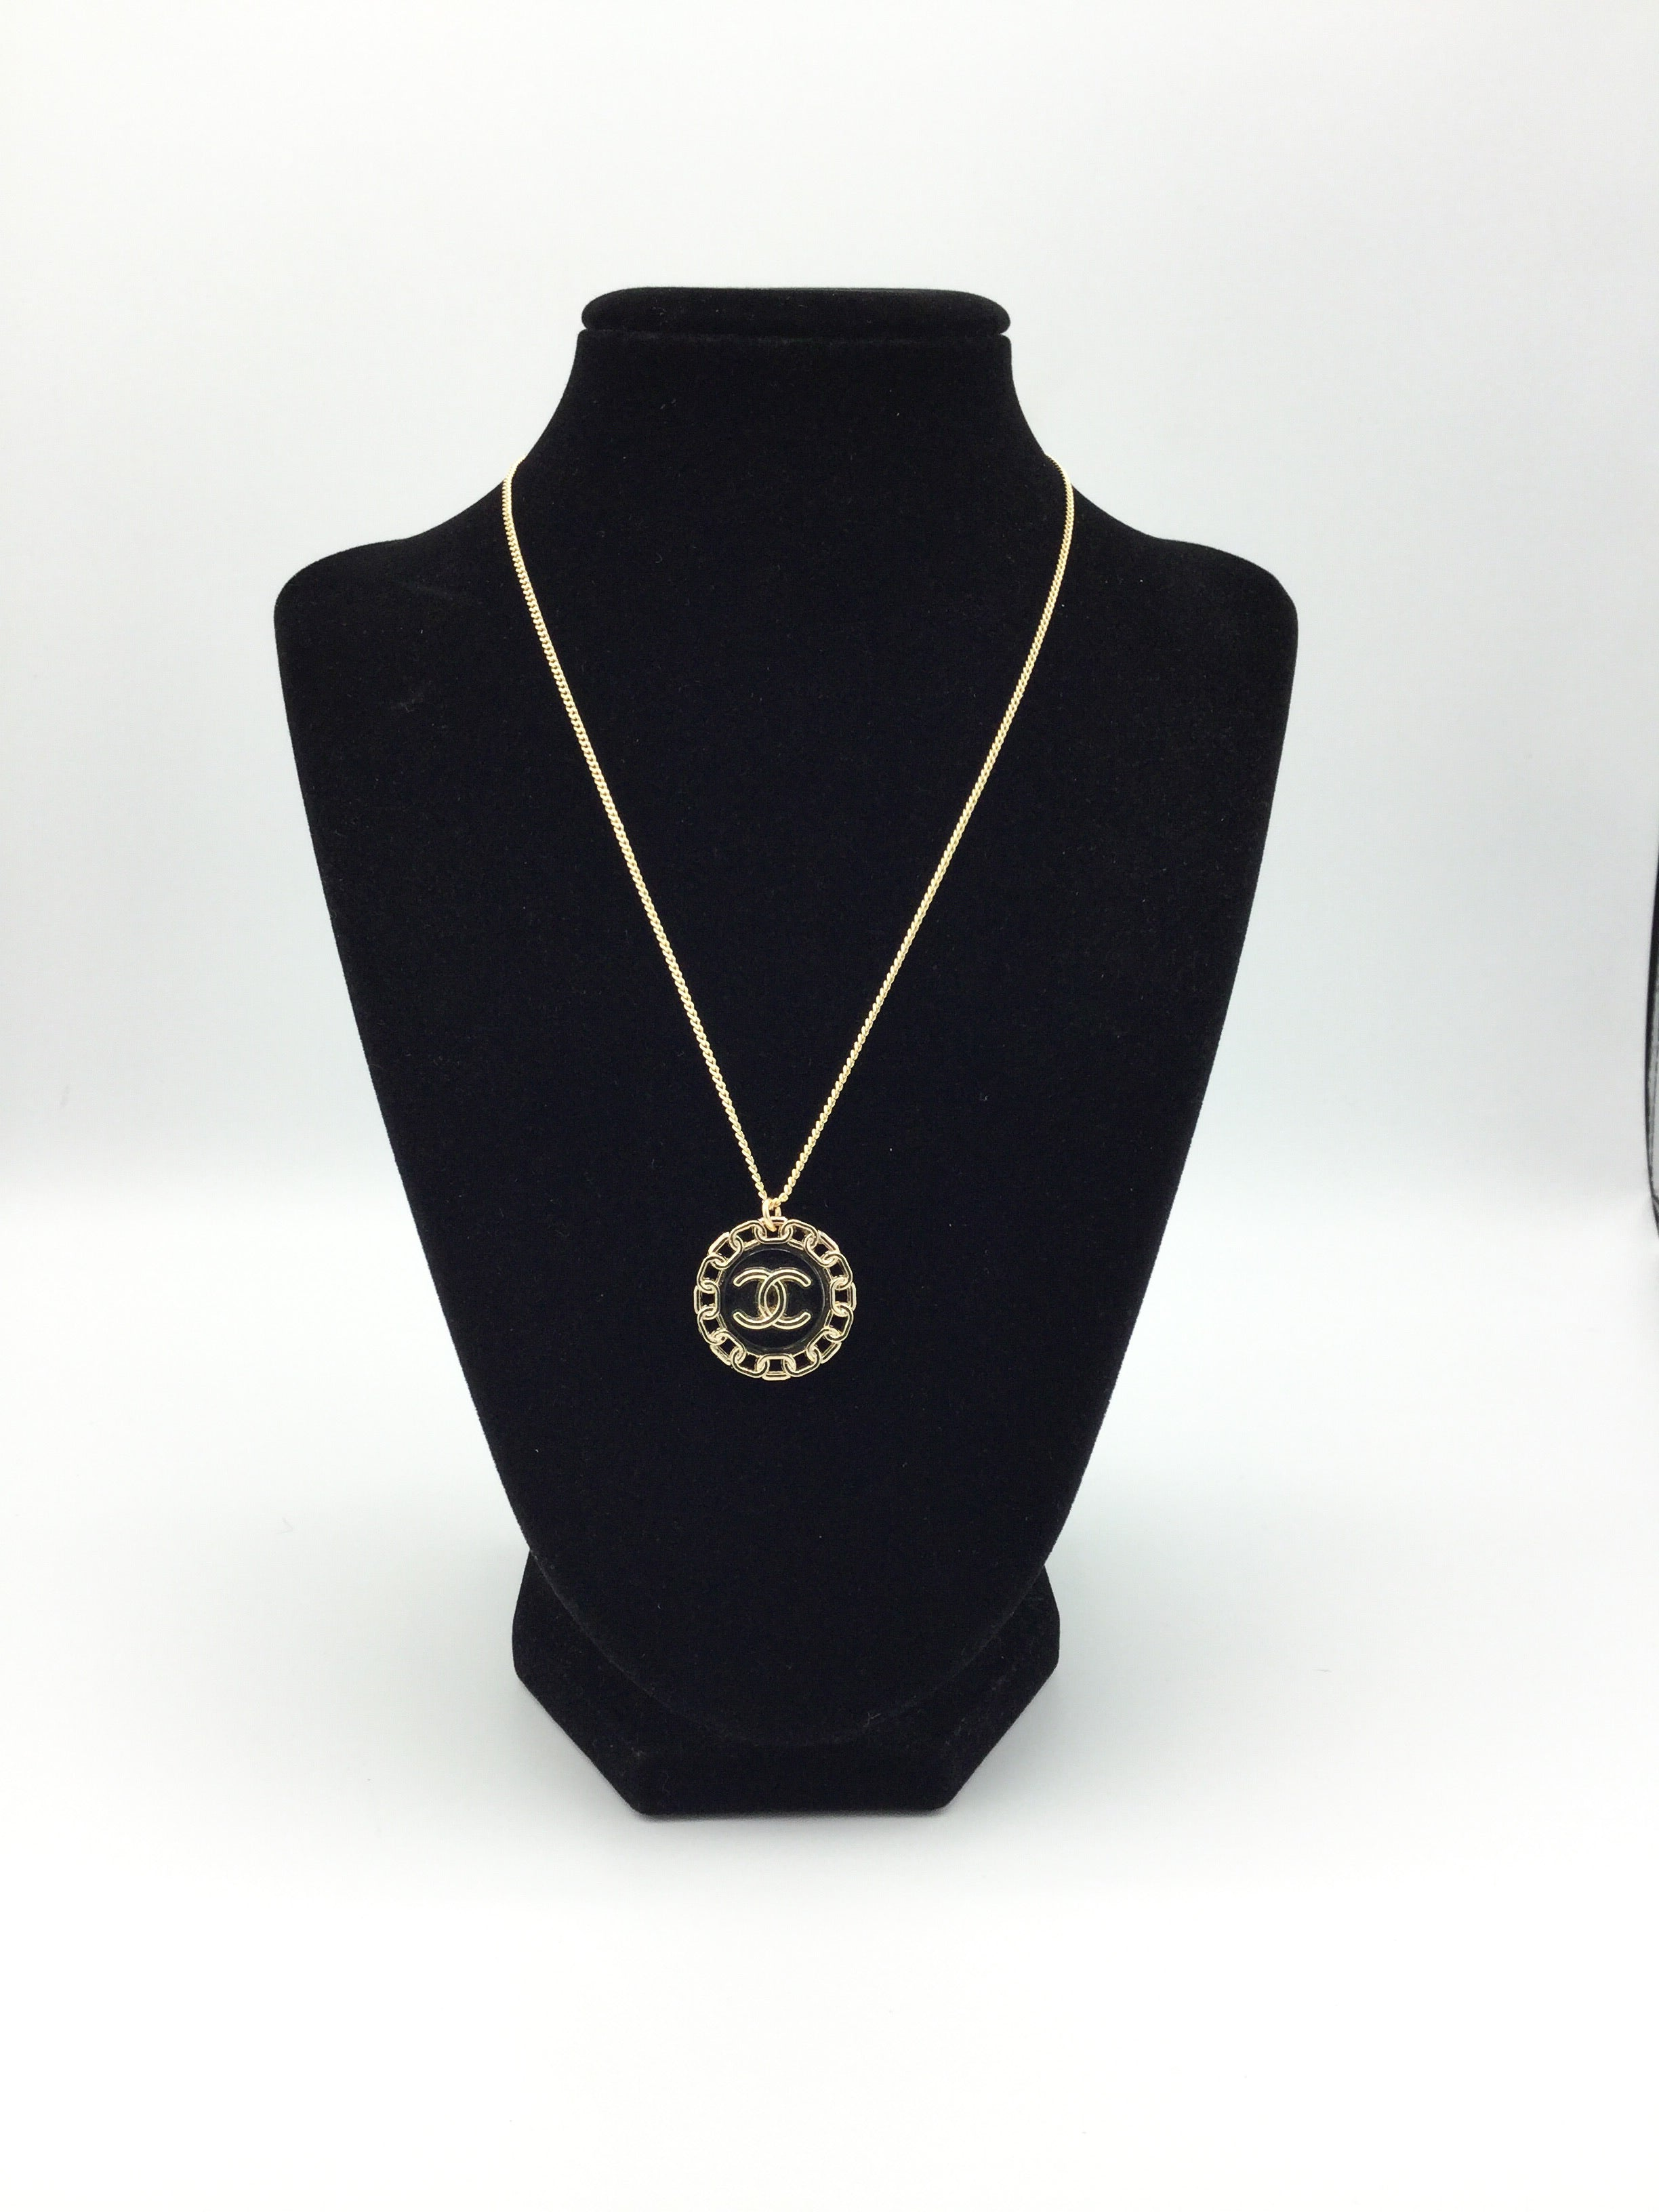 Designer Button Black & Gold Necklace with Logo